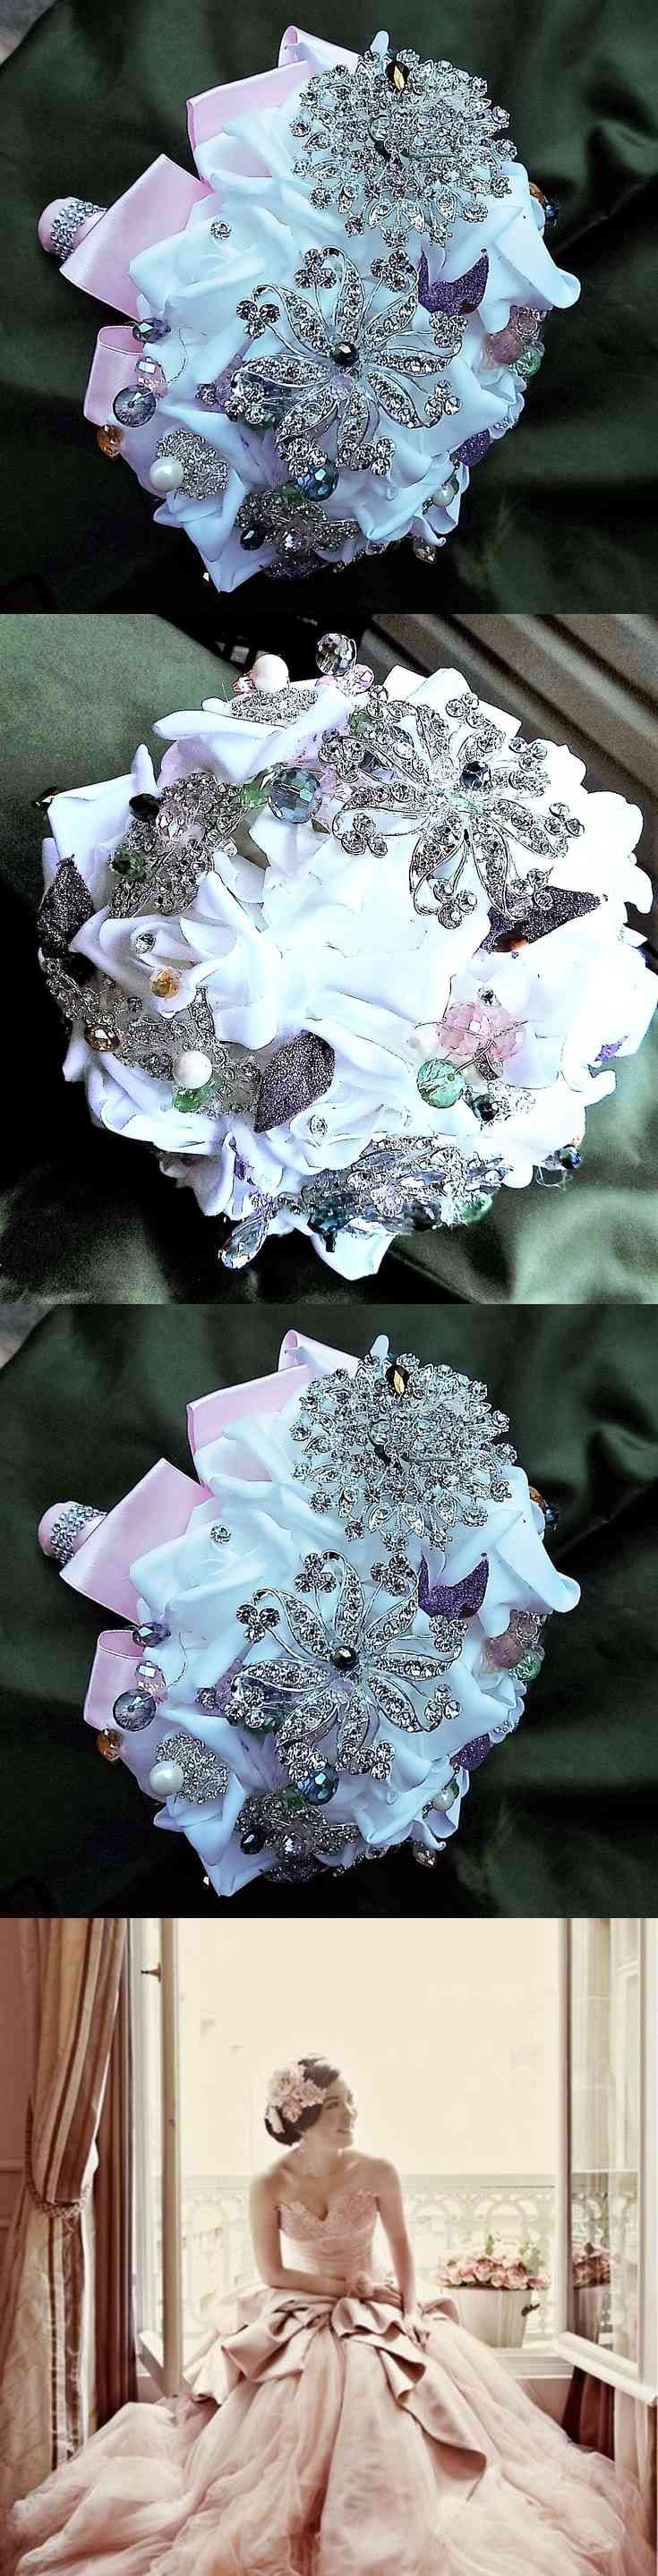 Brooch bouquet, pink, wedding bouquet, button bouquet, modern bouquet, white wedding, Bridal Bouquet, wedding brooch flowers, keepsake  Sarah Brooch Bouquet~ A simple and delicate with white roses, silver brooches and rhinestones each stone is wired tighter with different colored smaller stone, white foam roses compliment  neutral soft pink, lavender tones, delicate and (...) (via pushapin.com)